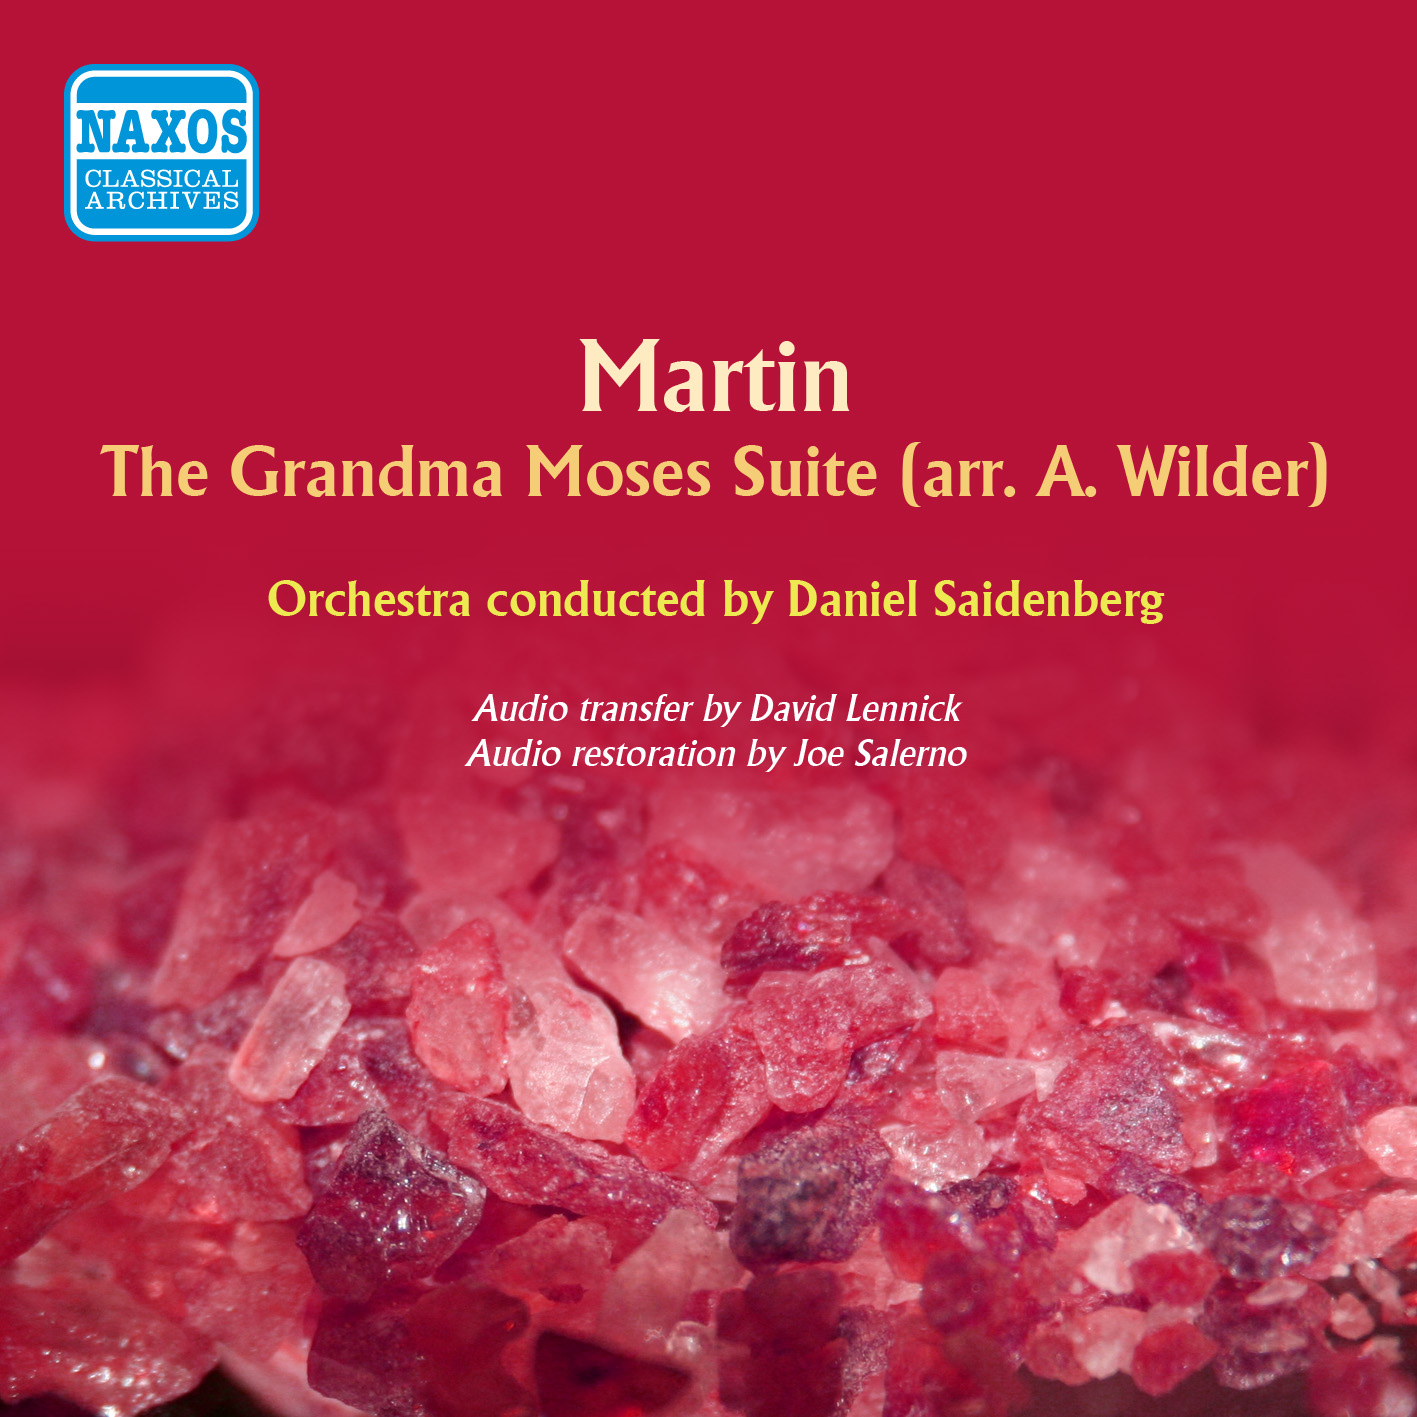 Martin: The Grandma Moses Suite